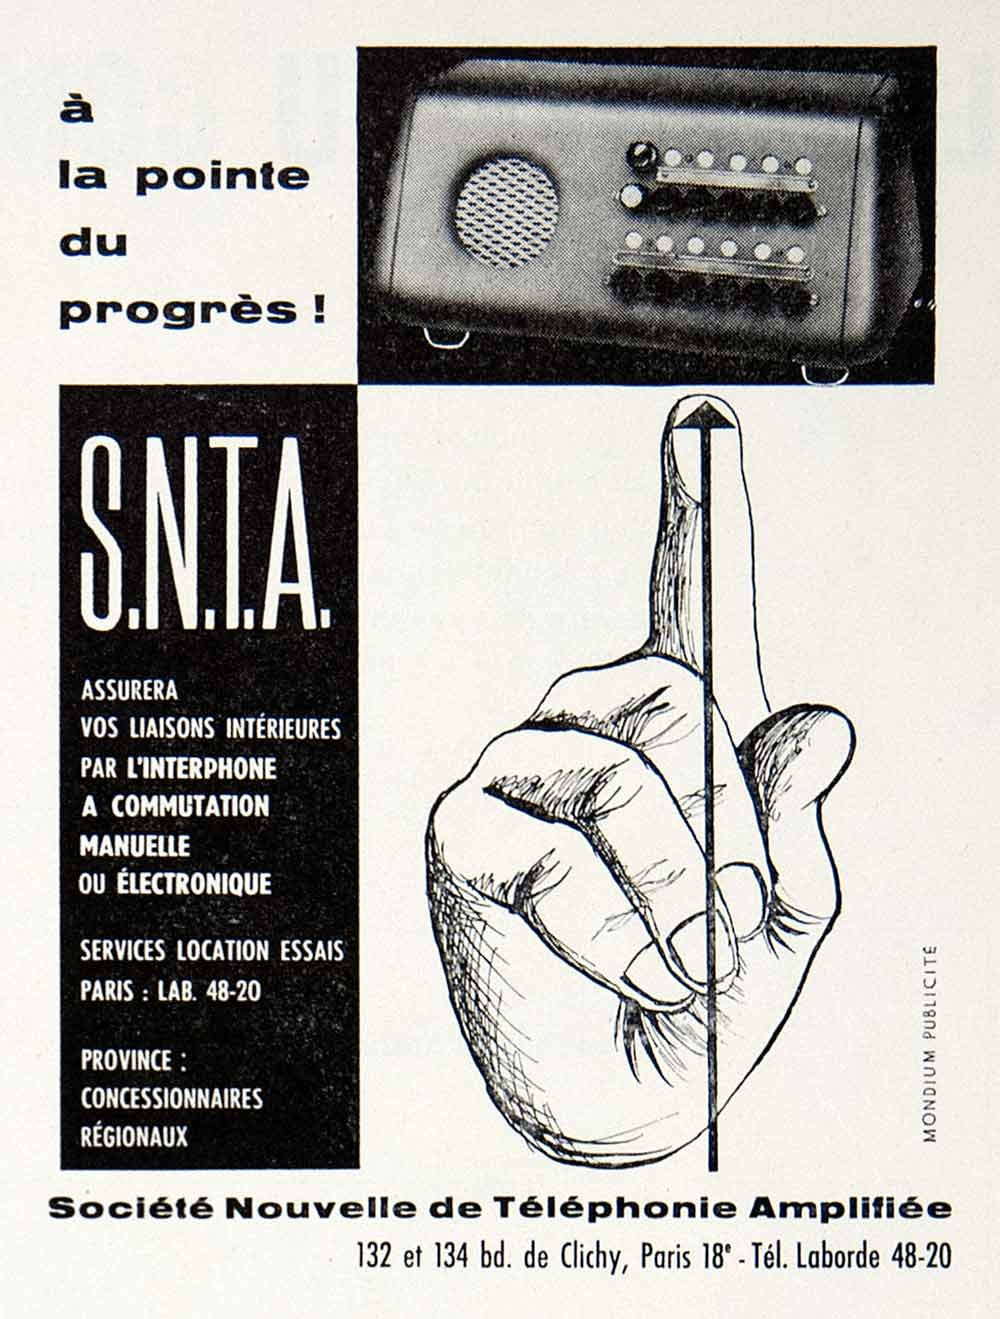 1957 Ad Societe Nouvelle Telephonie Amplifiee 132 Bld Clichy Paris Intercom VEN7